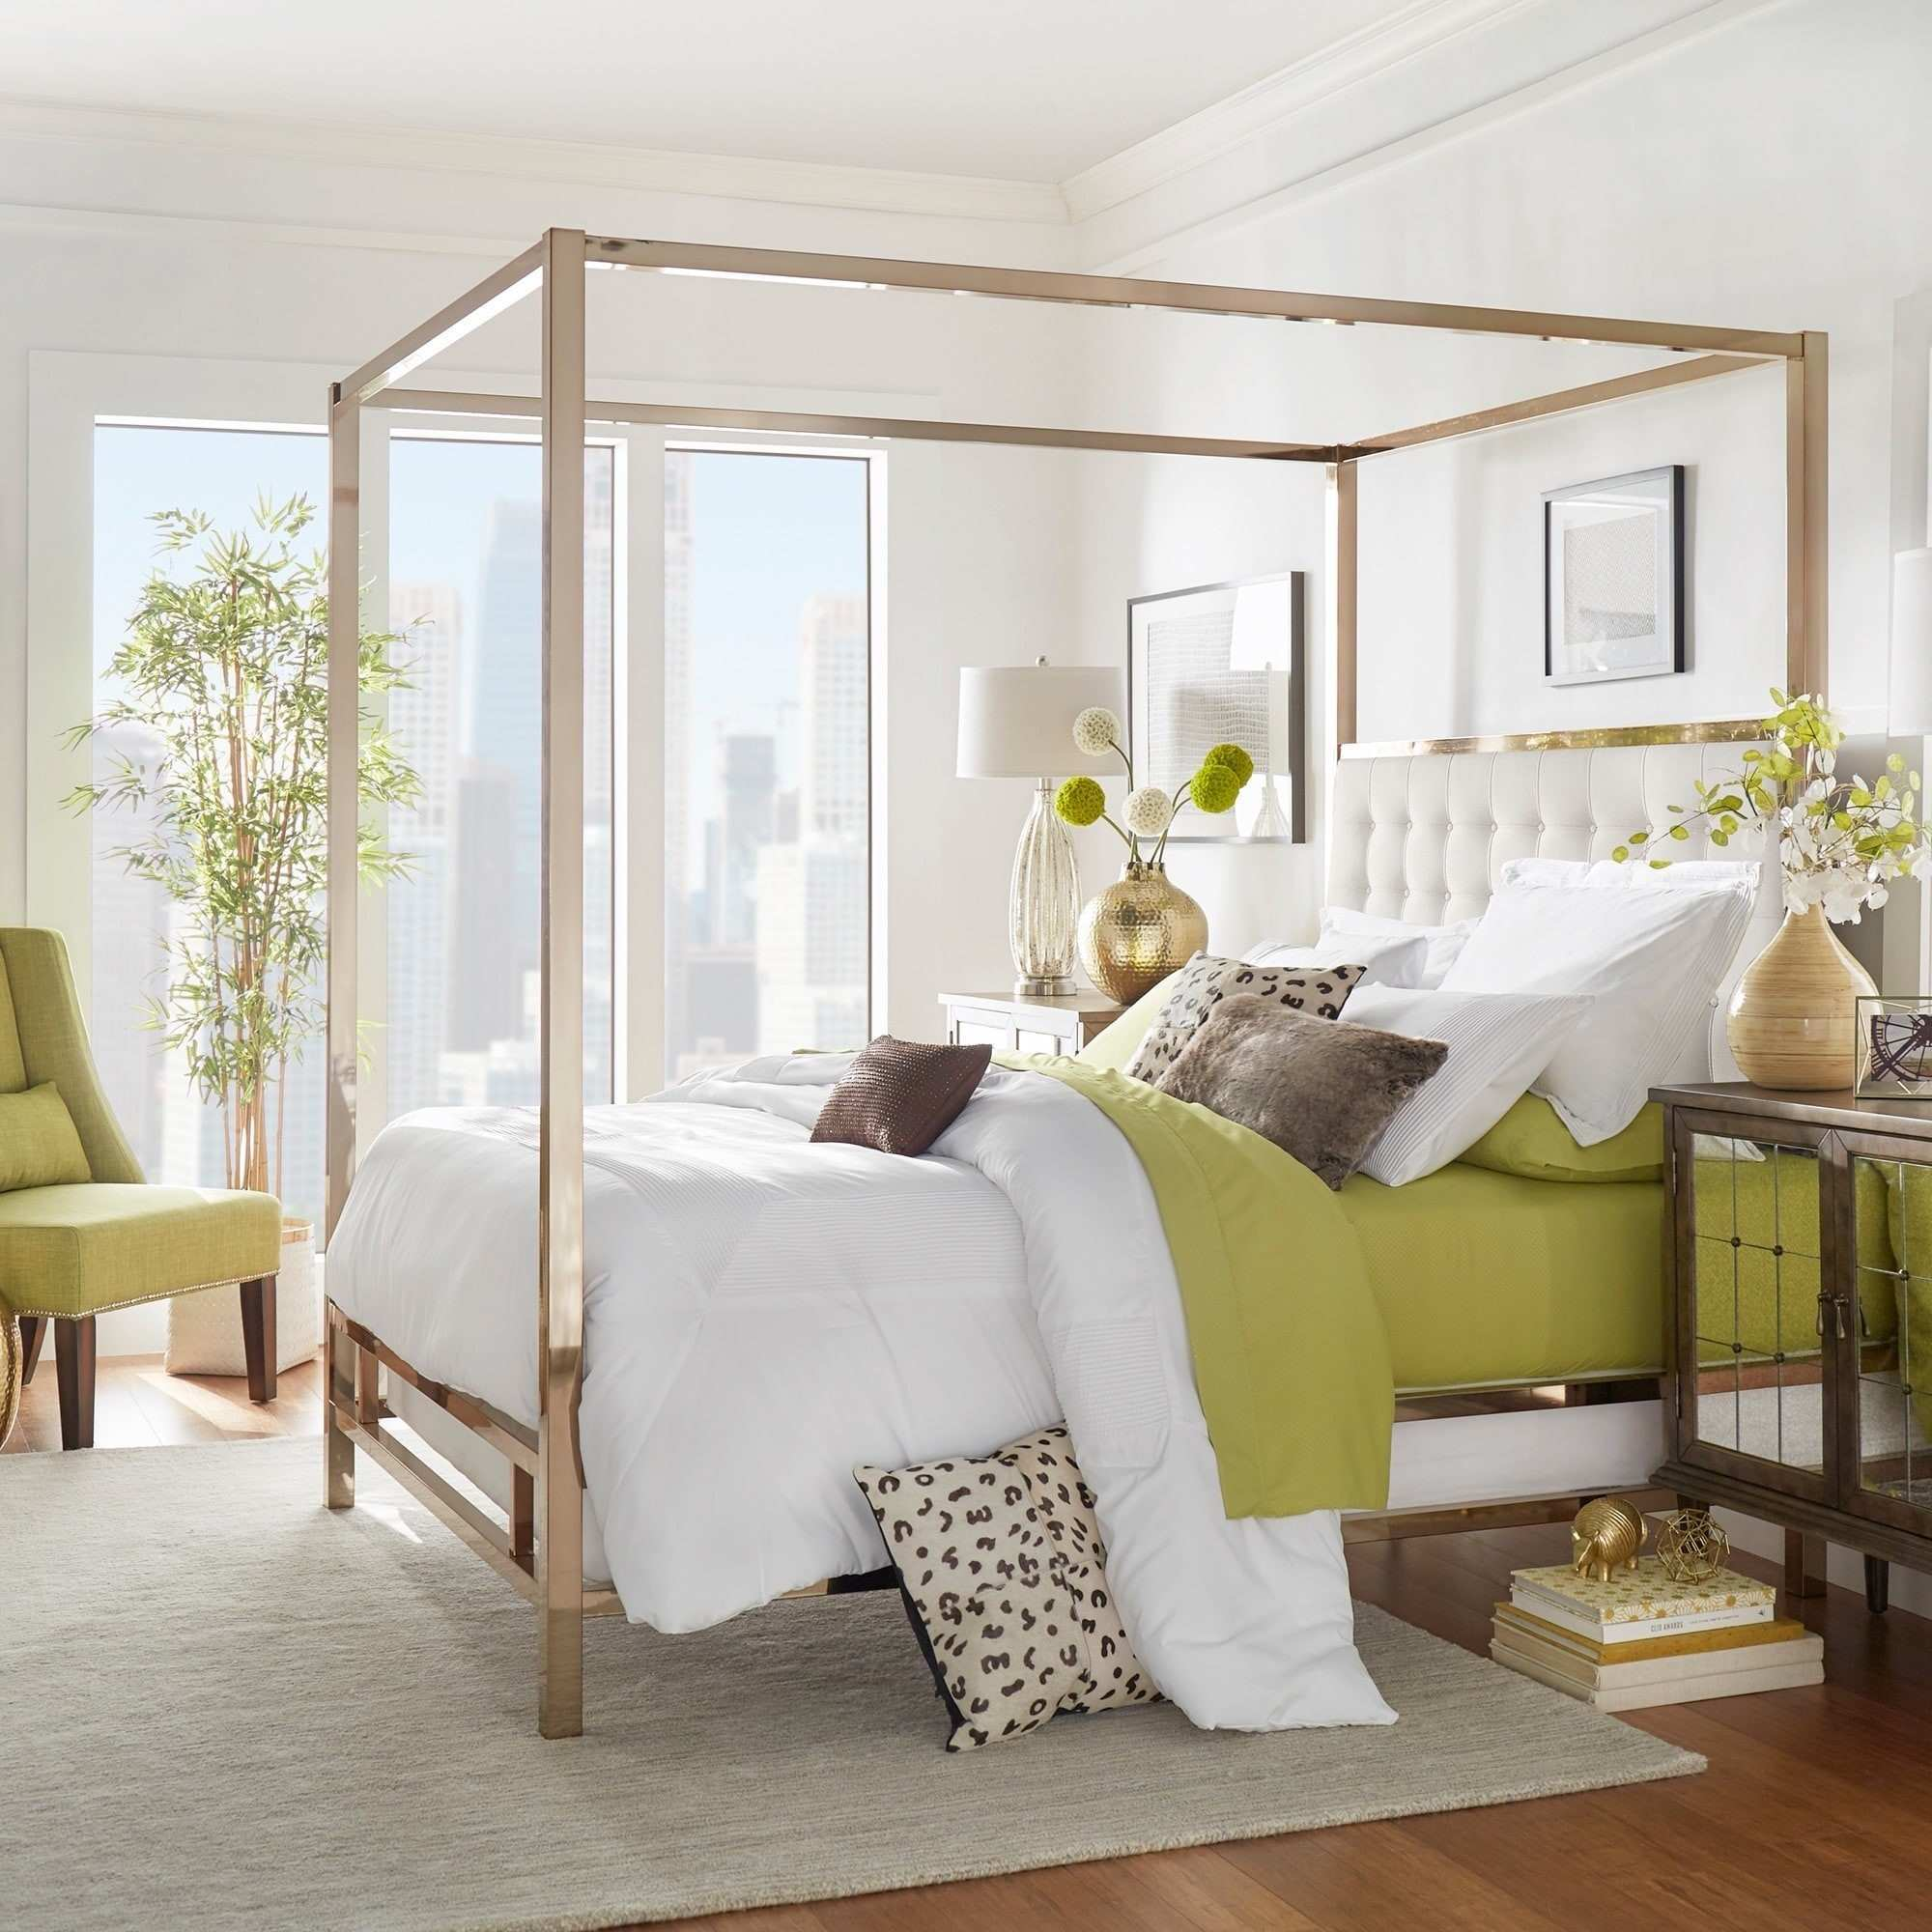 Bed Frames Next Day Delivery New Bedroom Bedroom Designs Beautiful